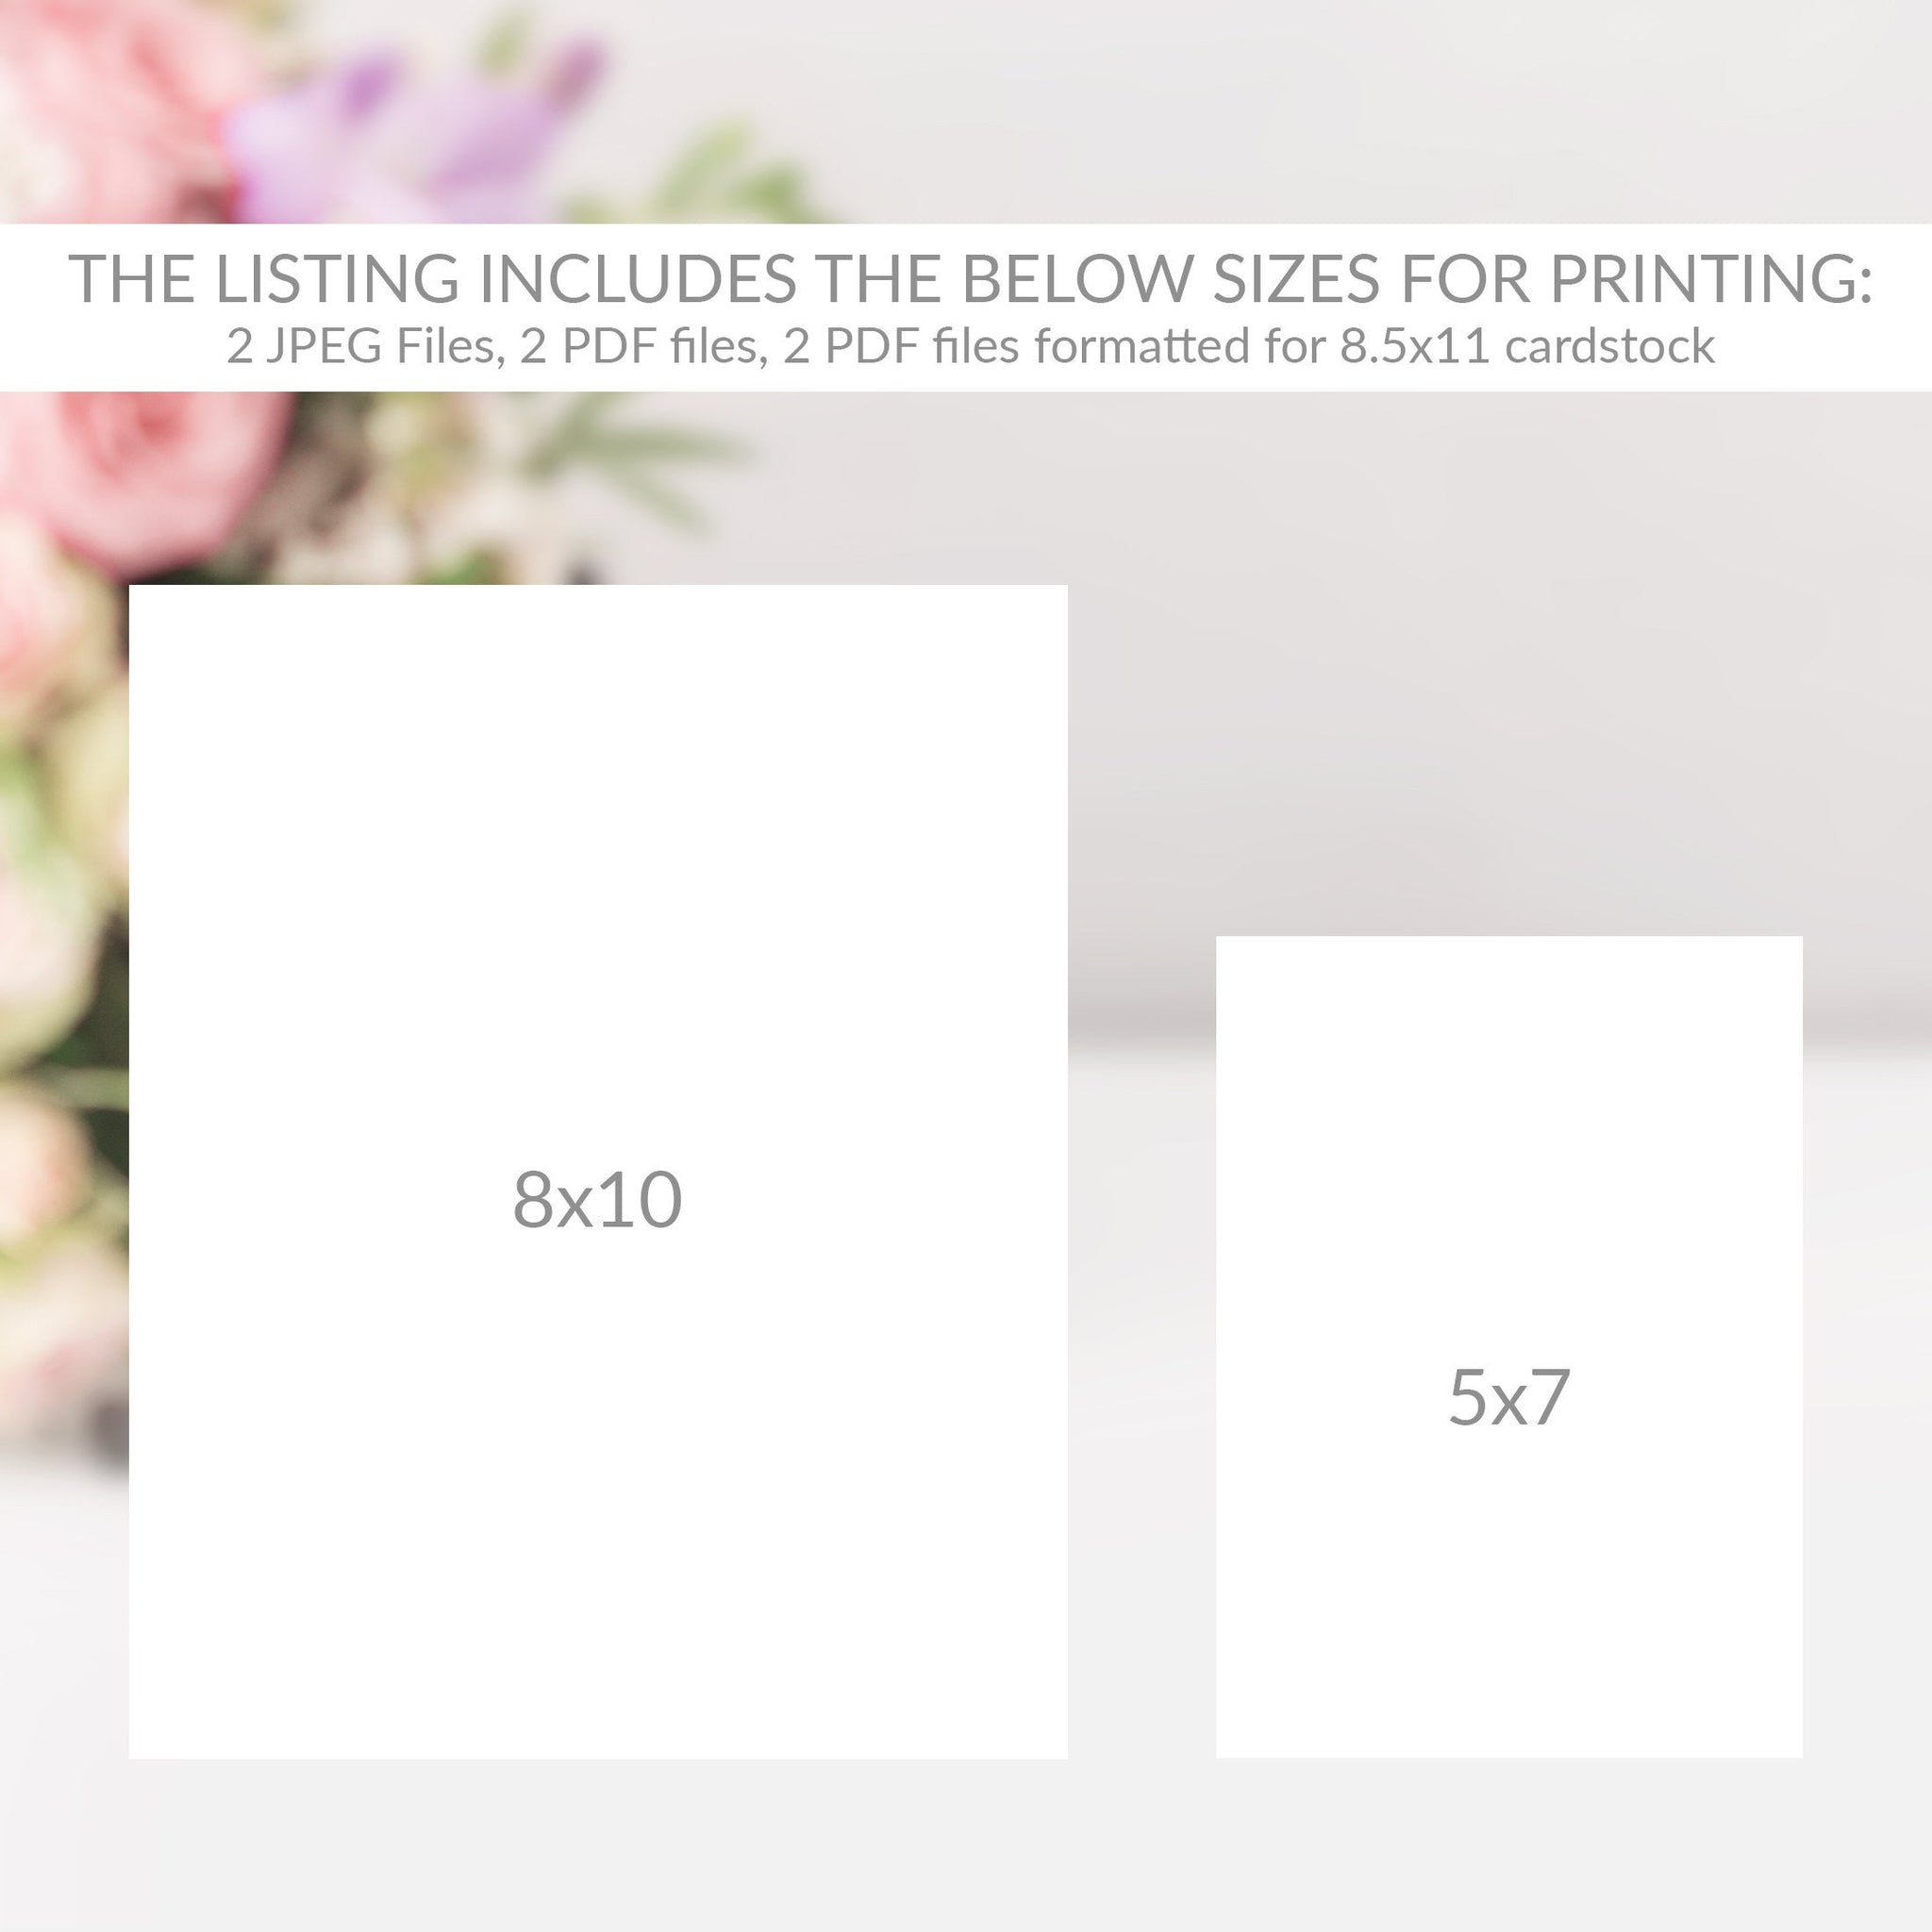 Baby Shower Address an Envelope Sign, Baby Shower Signs Printable, Floral Baby Shower Decorations, DIGITAL DOWNLOAD - FR100 - @PlumPolkaDot